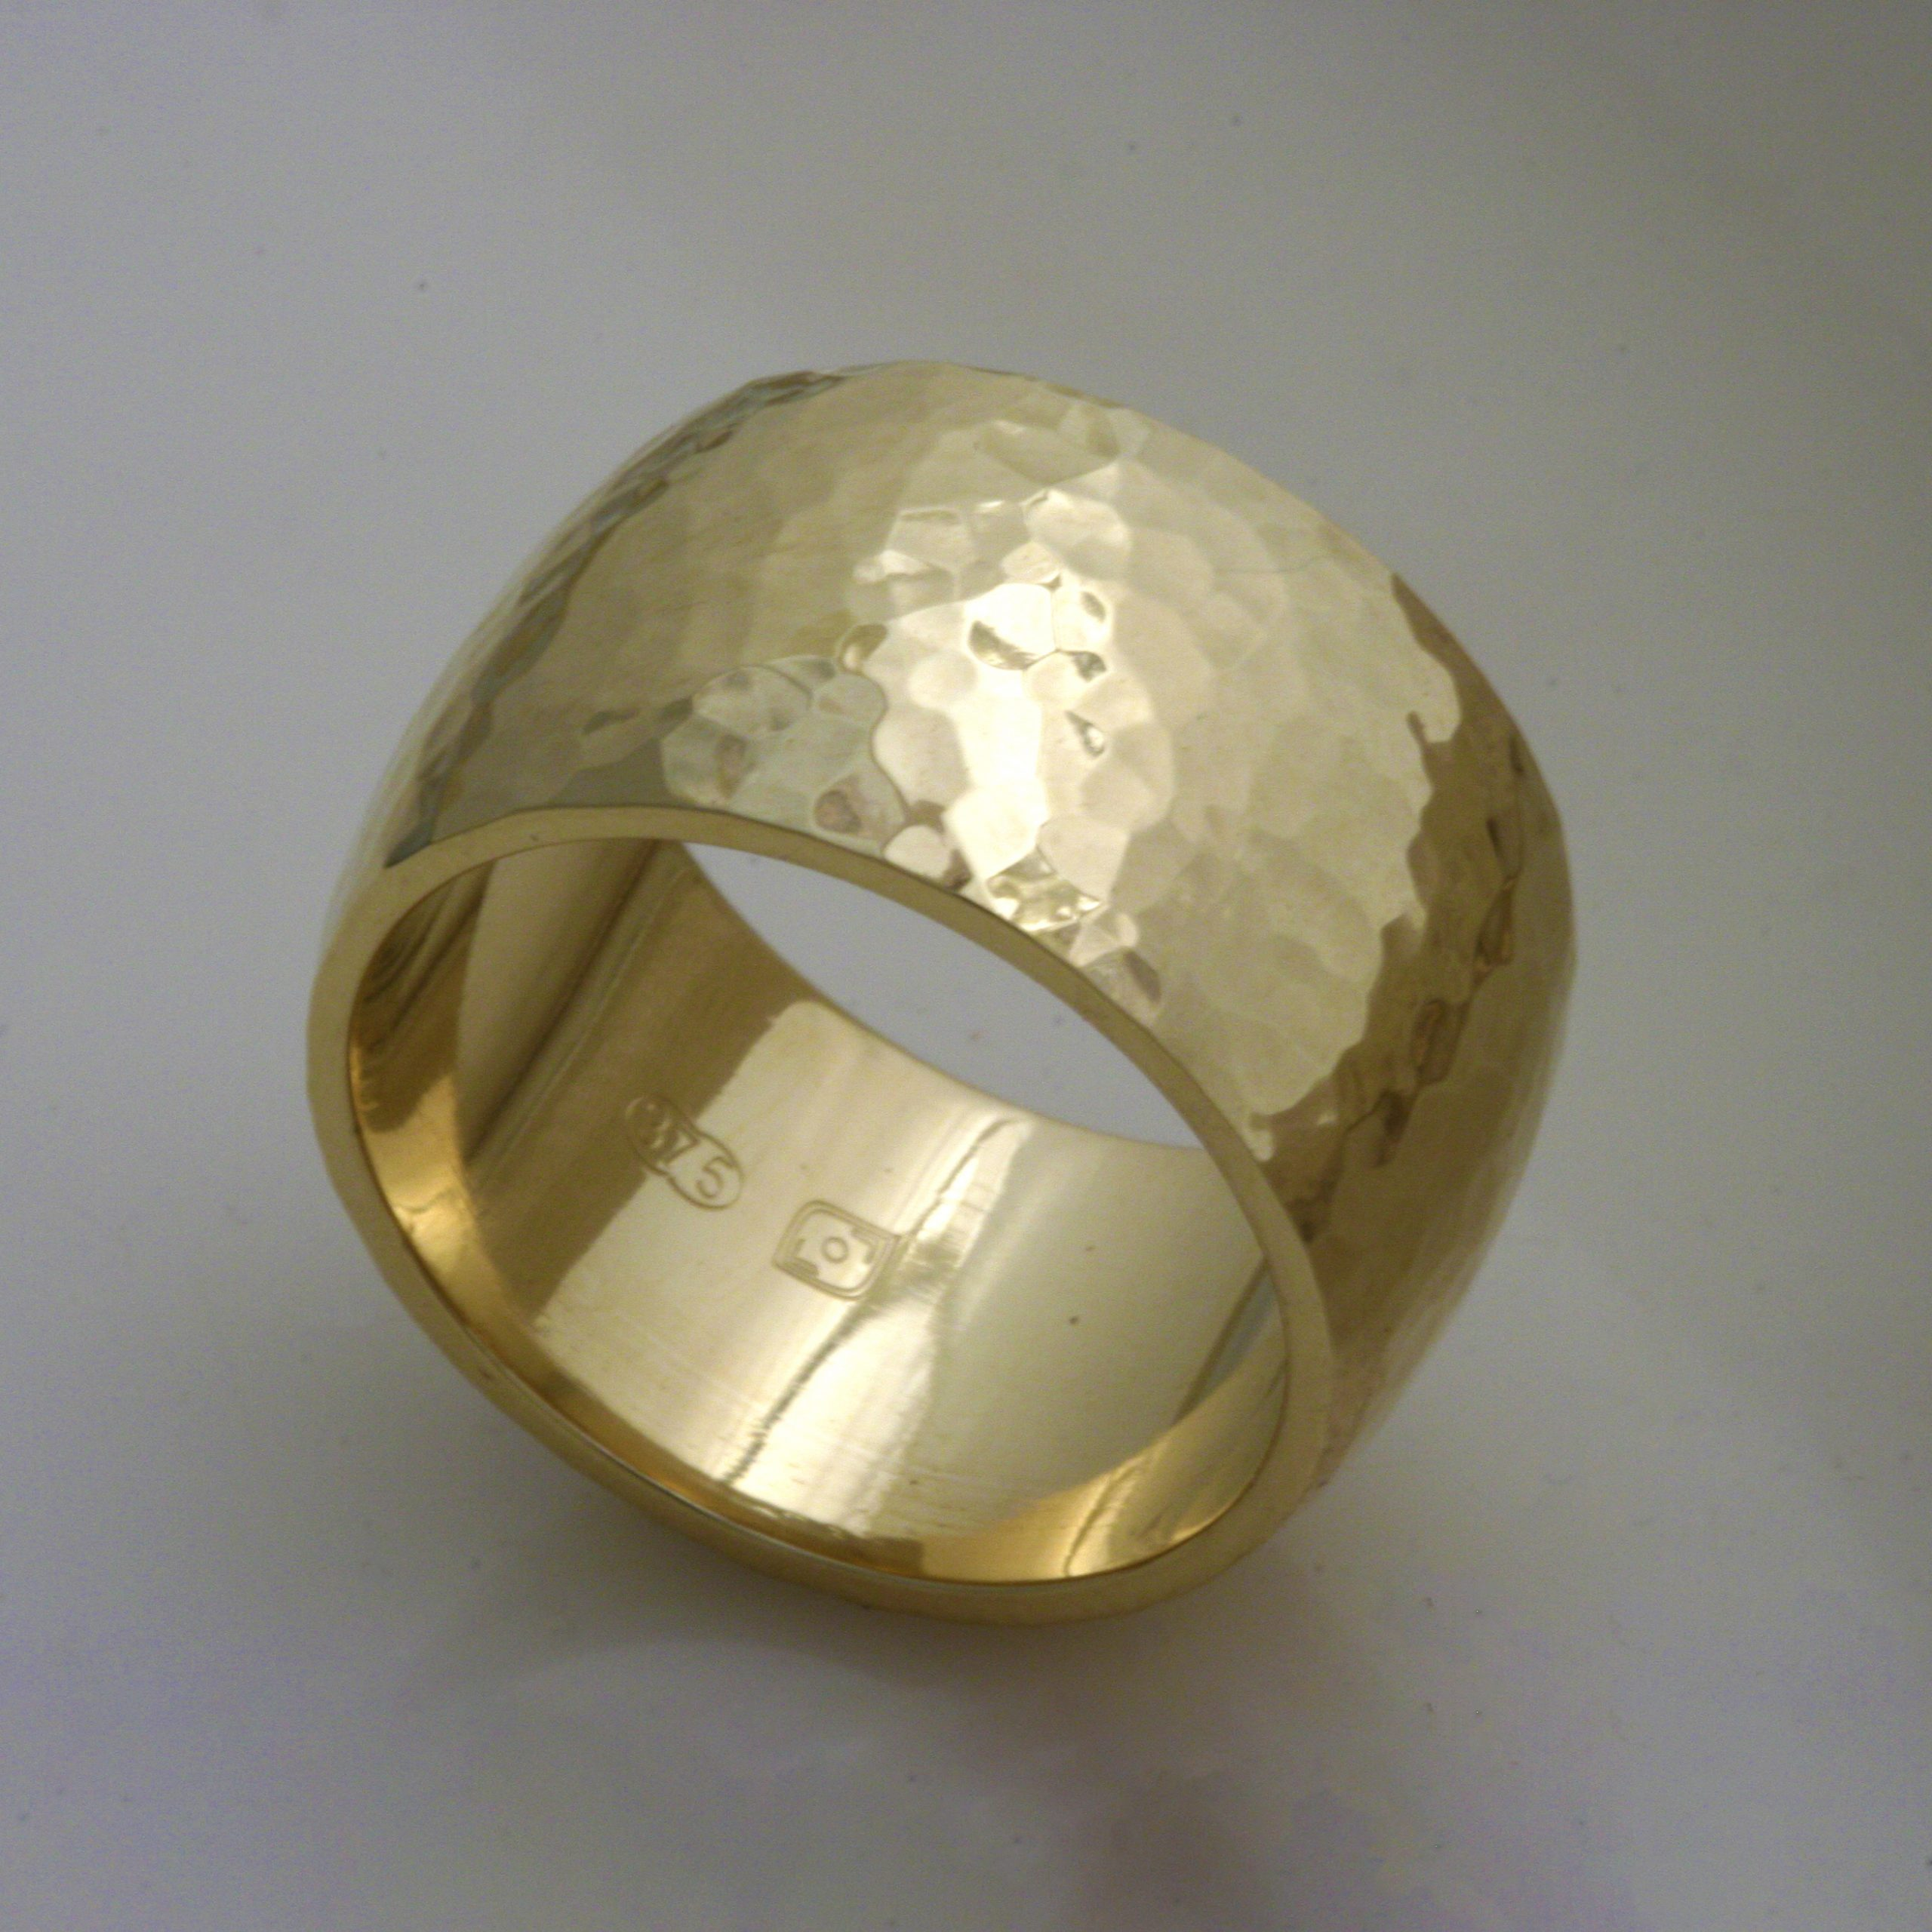 Euphoria Hammered Gold Ring 4